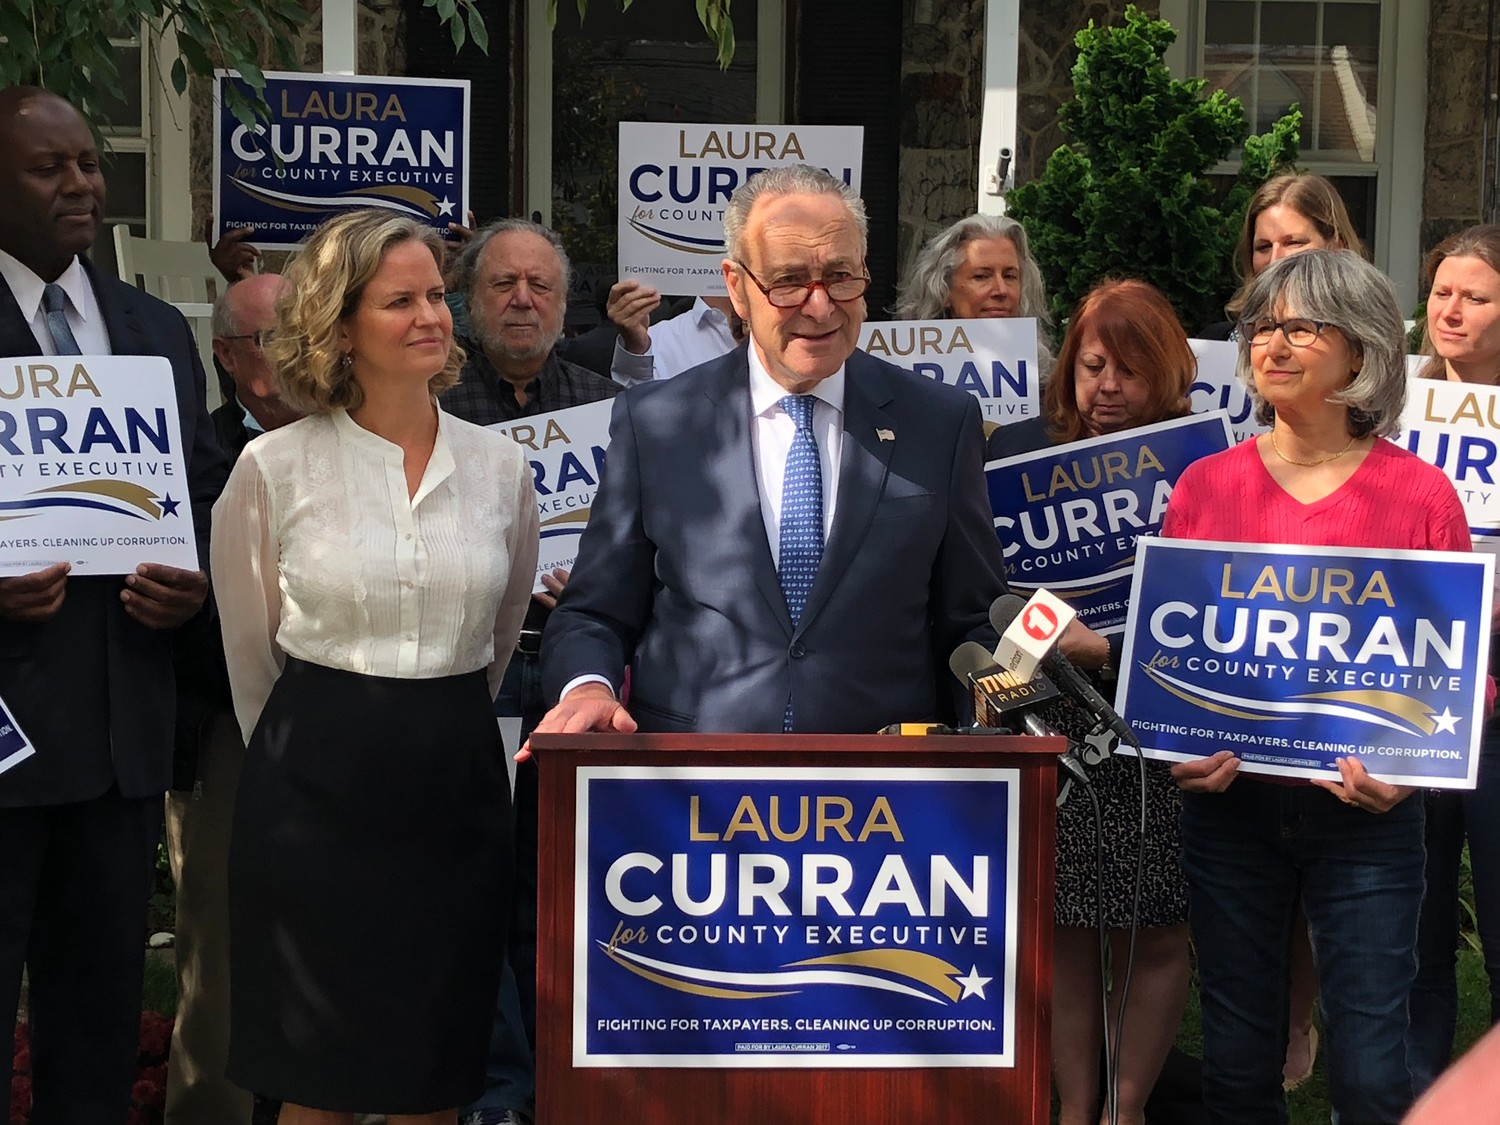 U.S. Sen. Chuck Schumer announced his support for Democrat Laura Curran's bid for county executive on Thursday.